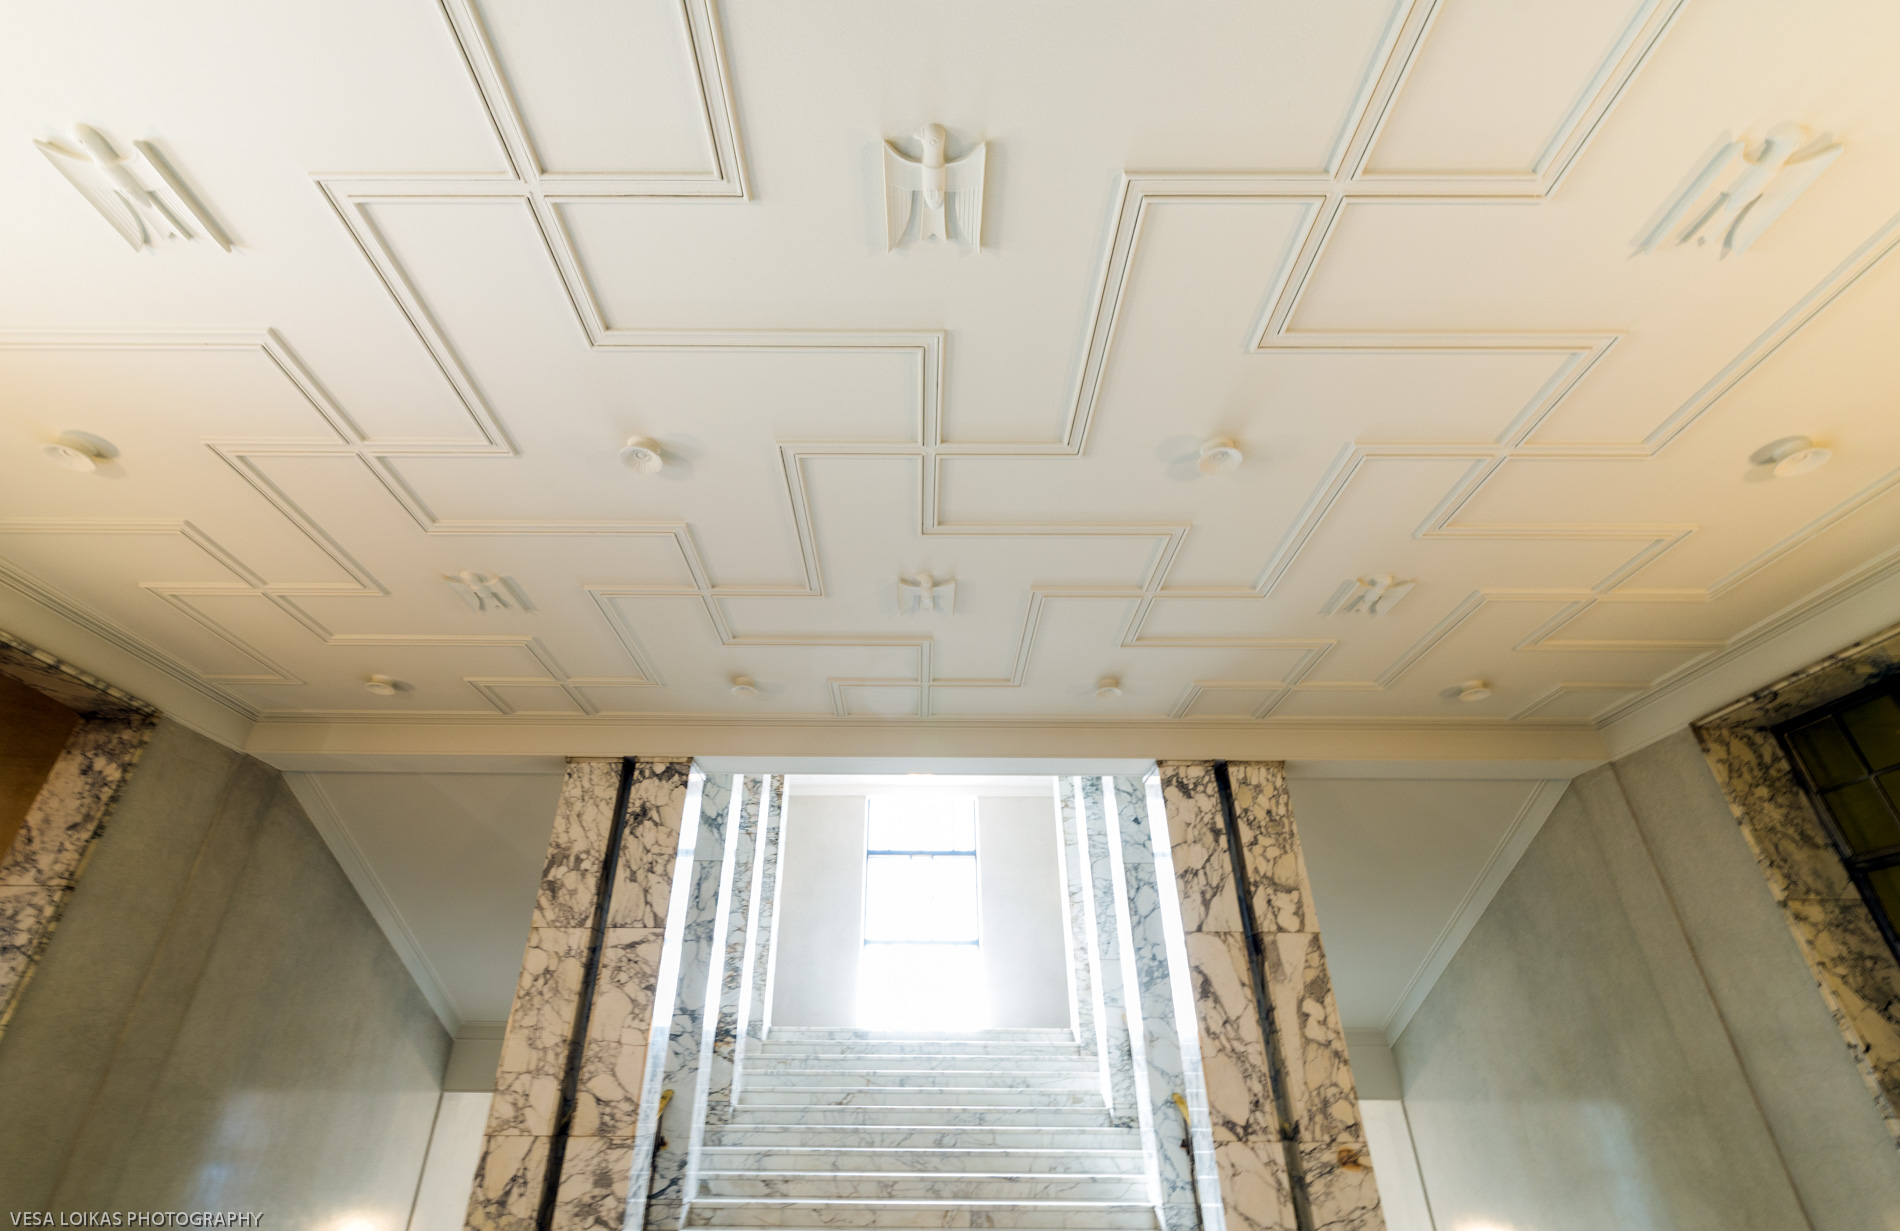 Ceiling detail in the decorative stair case with marble and stucco lustro surfaces.